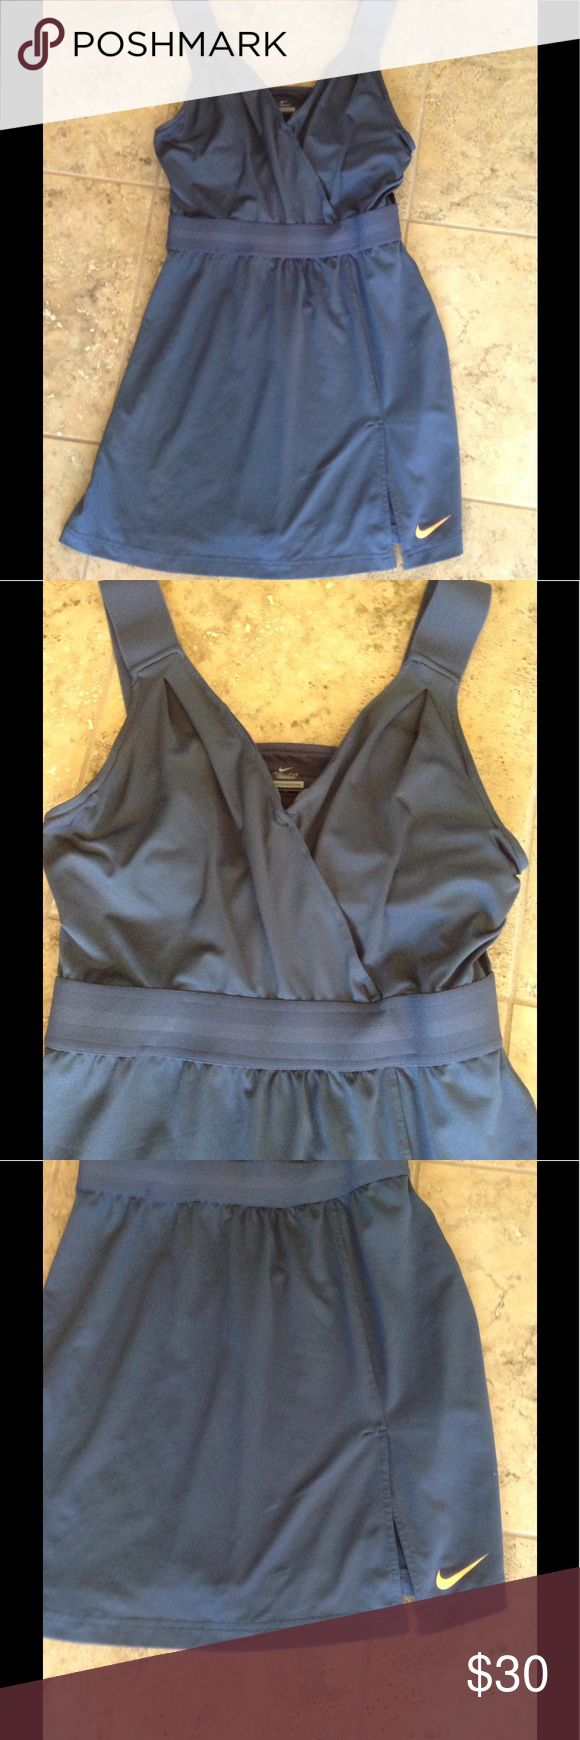 👗👗👗Cute Nike Dress👗👗👗 👗👗👗👗A really cute sporty dri- fit Nike dress. It have a built in bra and elastic band straps. It's made from 87% polyester and 13% spandex.  It's very soft and stretchy. Also in excellent condition.👗👗👗👗 Nike Dresses